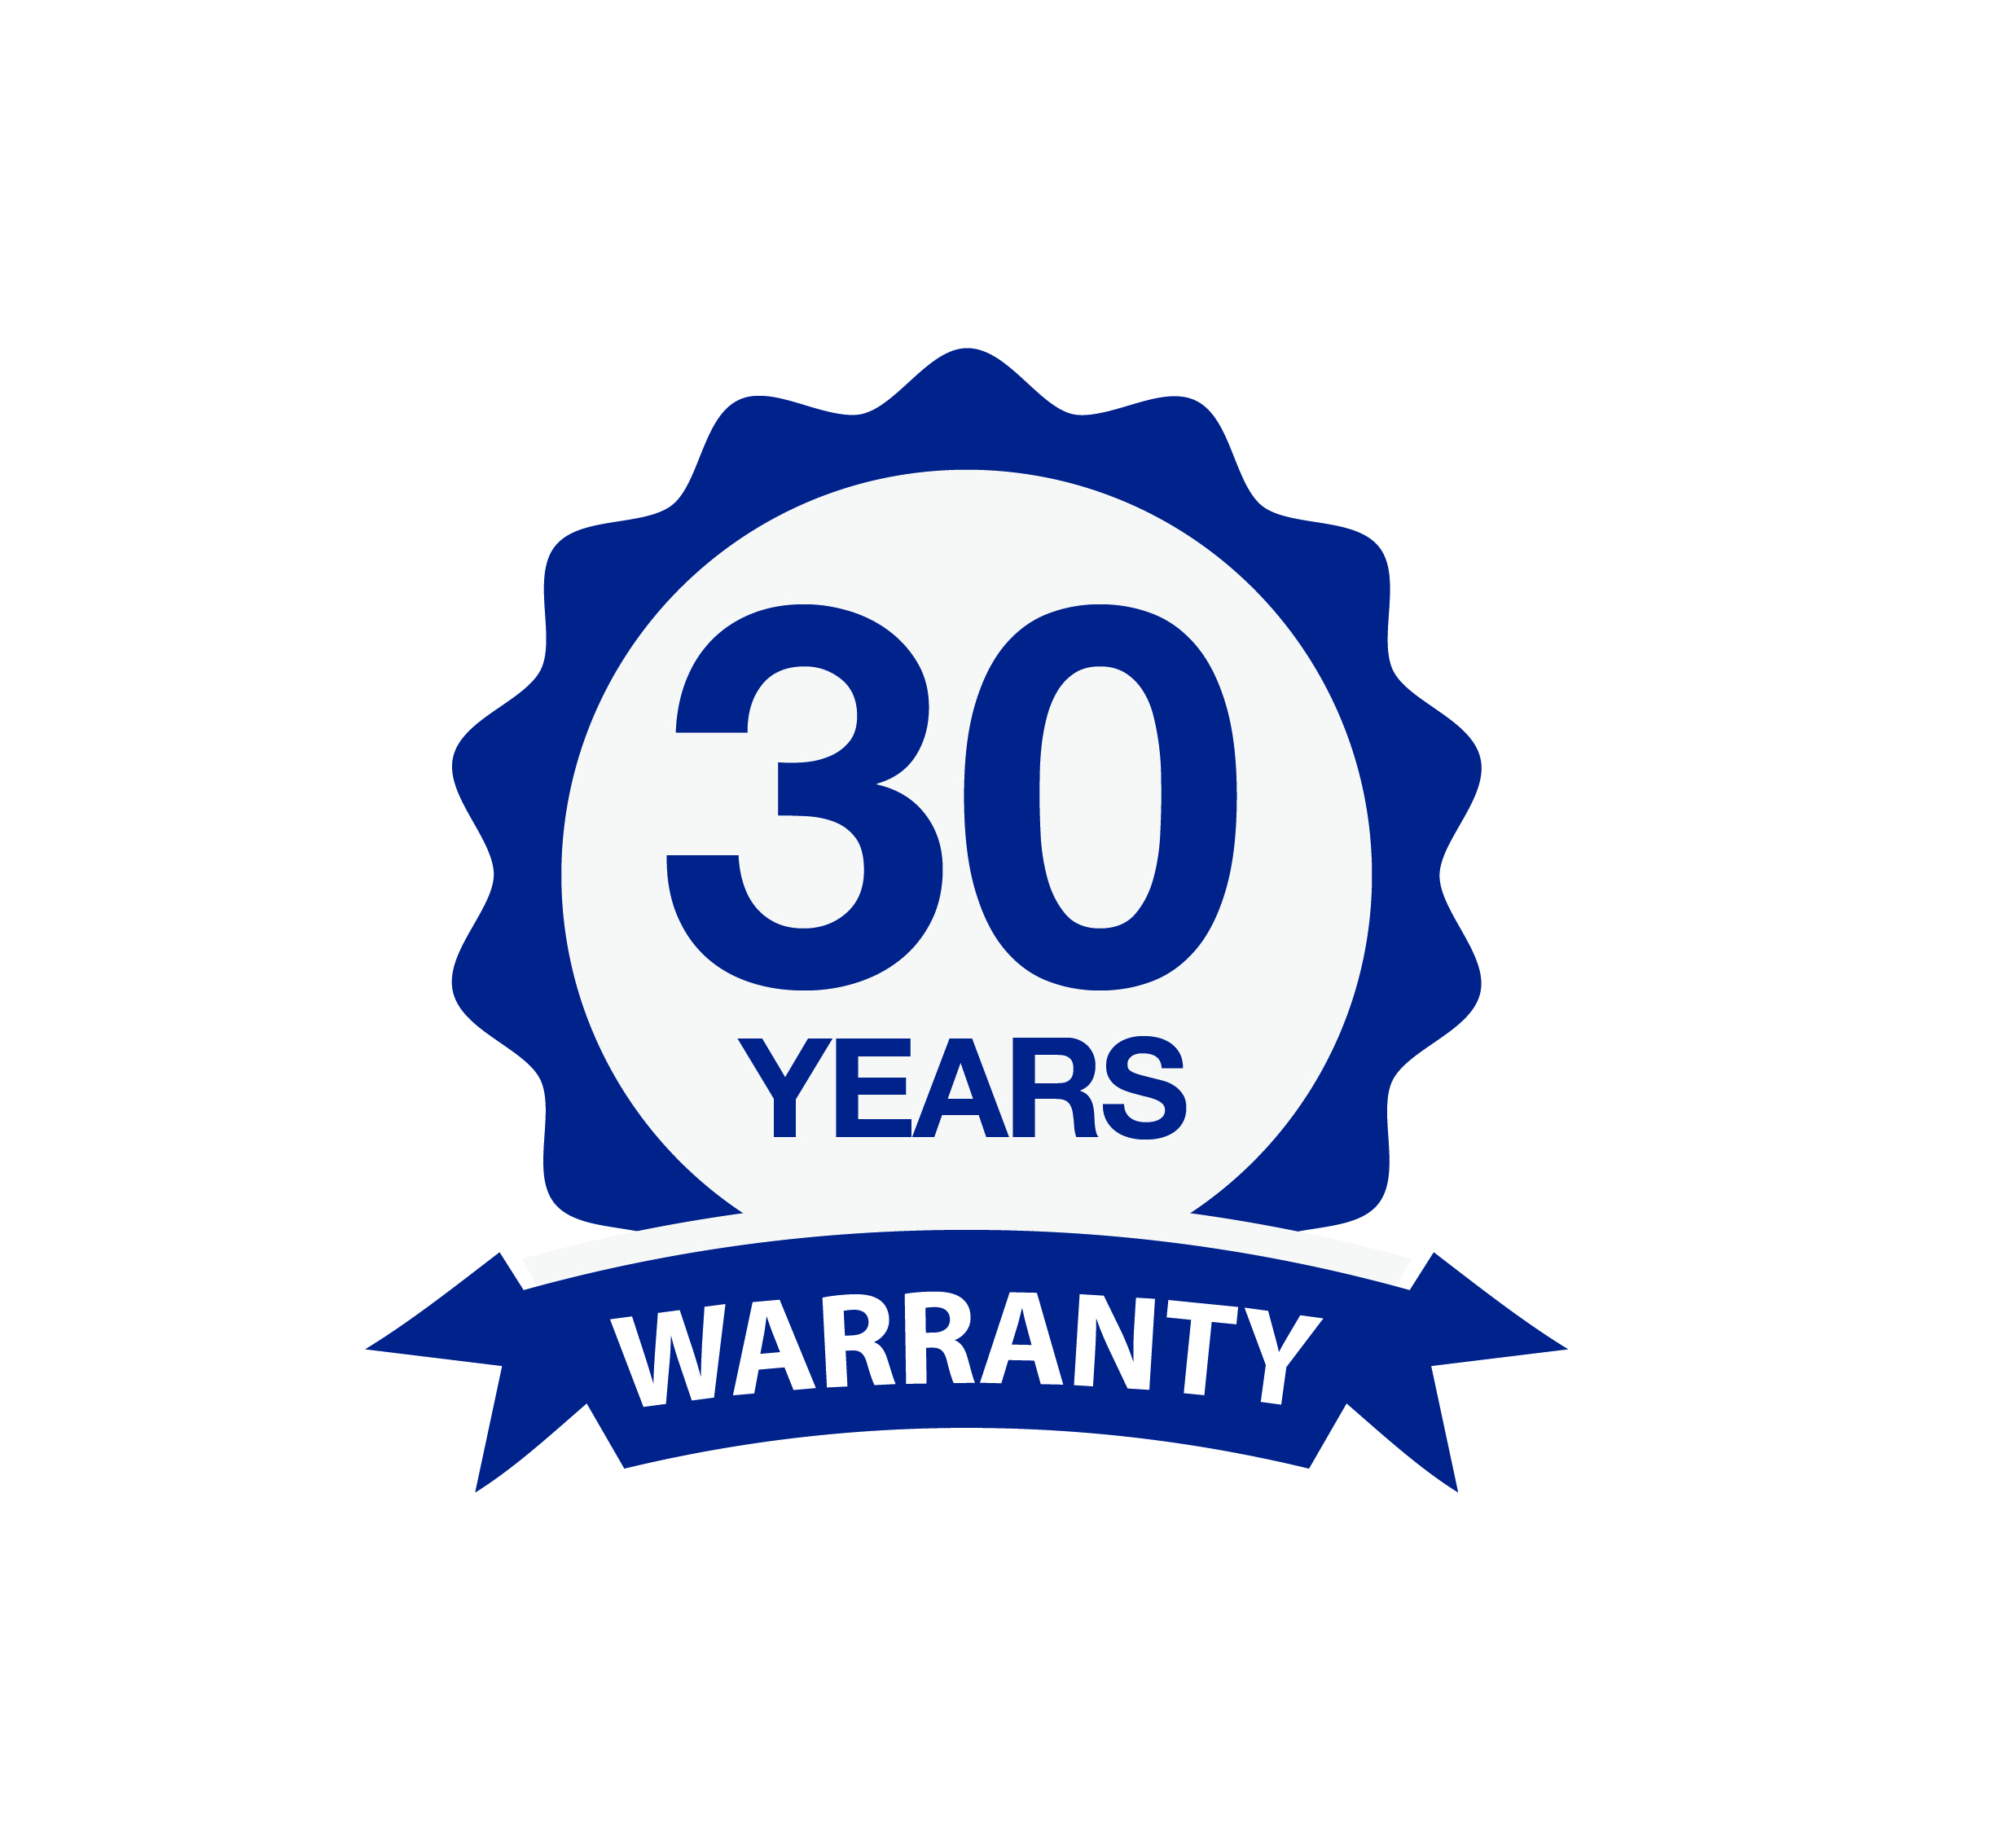 30 years guarantee logo